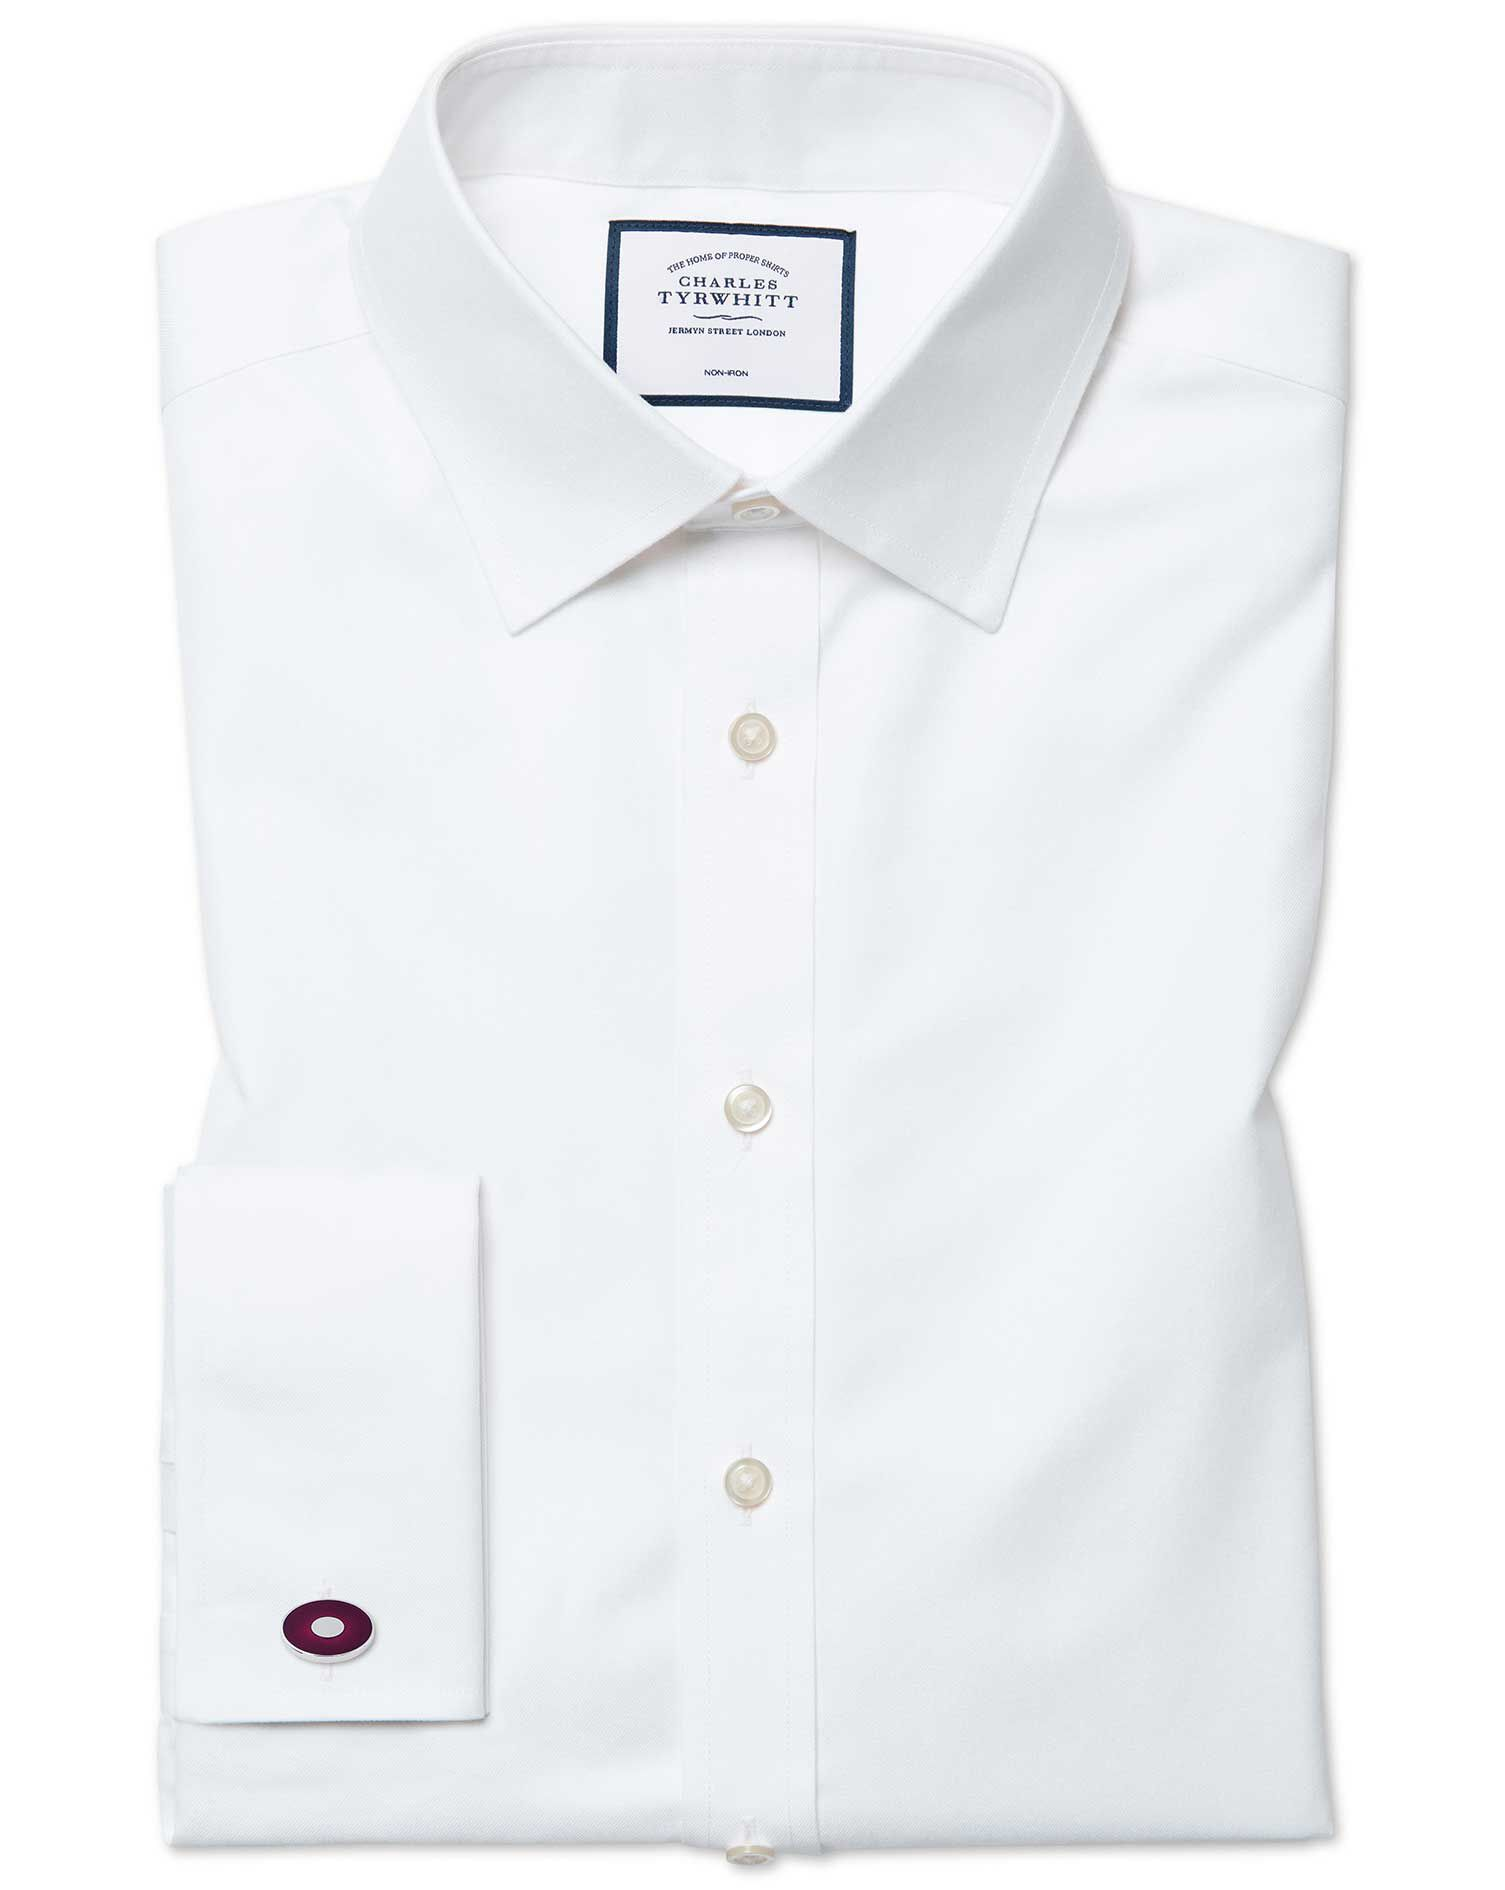 Classic Fit Cutaway Non-Iron Twill White Cotton Formal Shirt Single Cuff Size 15.5/33 by Charles Tyr